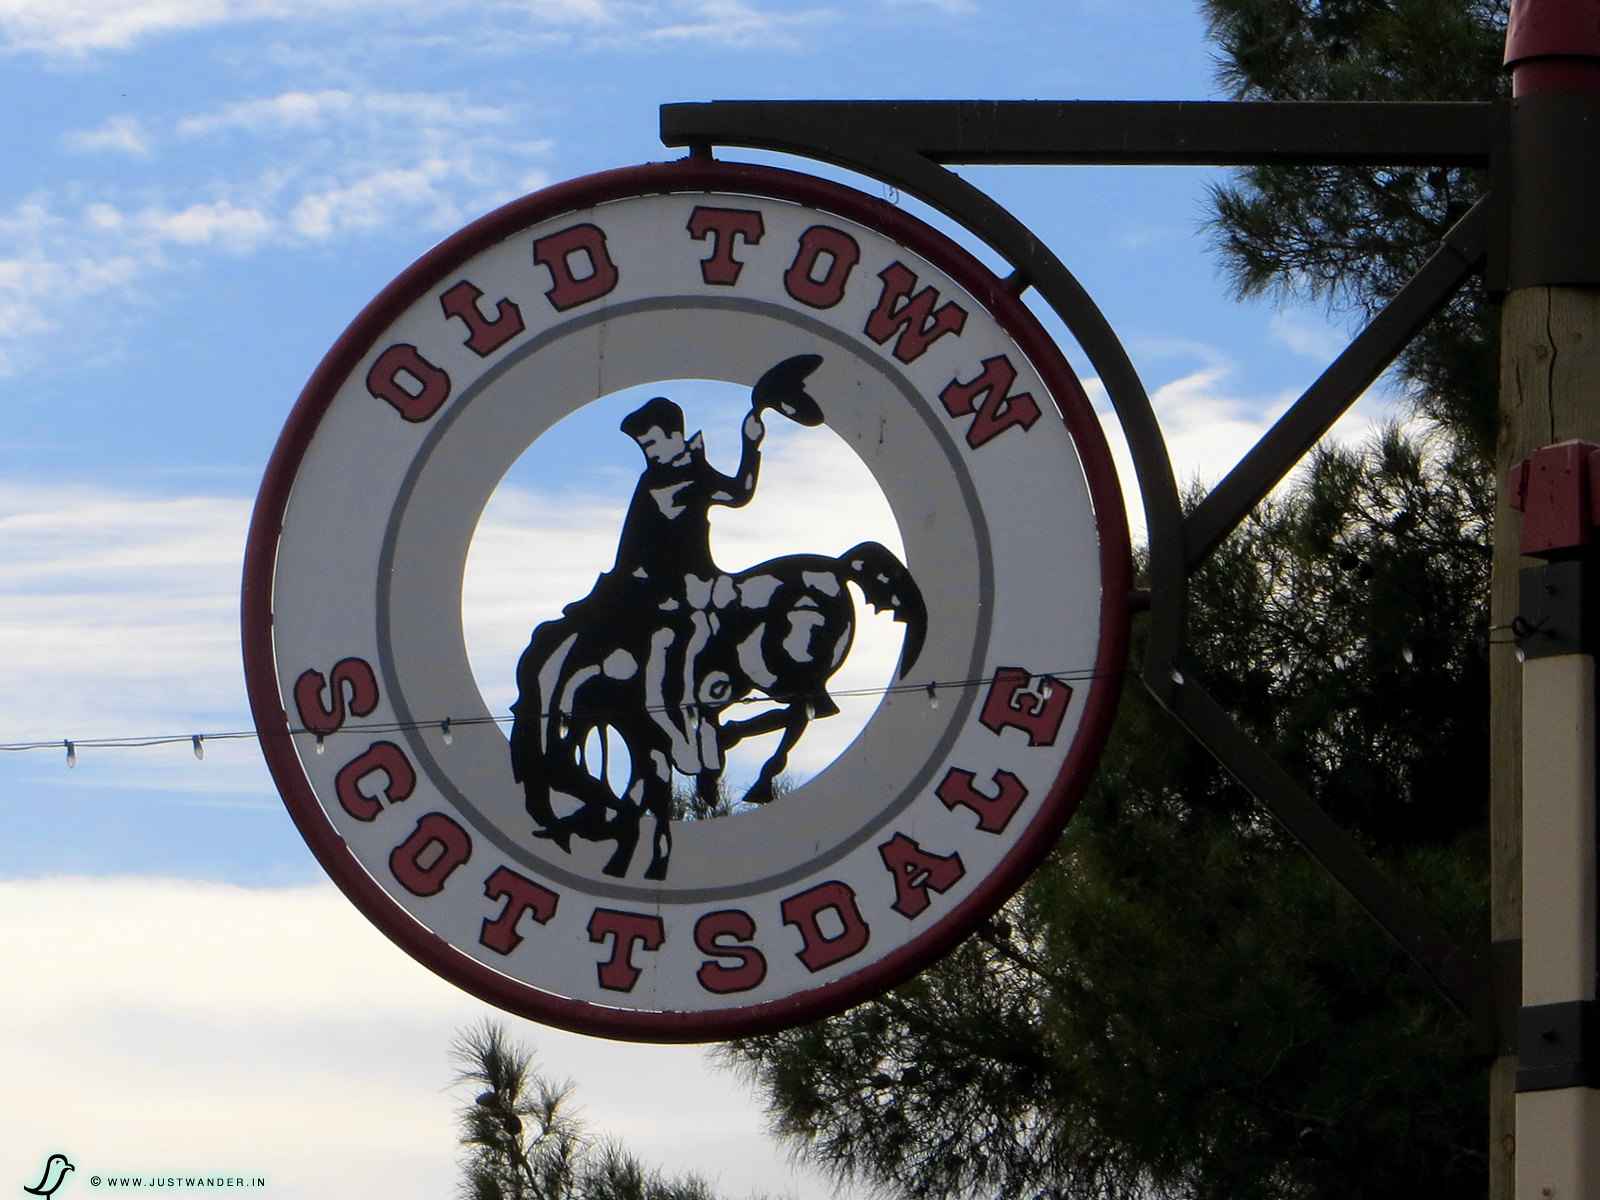 PIC: Old Town Scottsdale Arizona - Sign